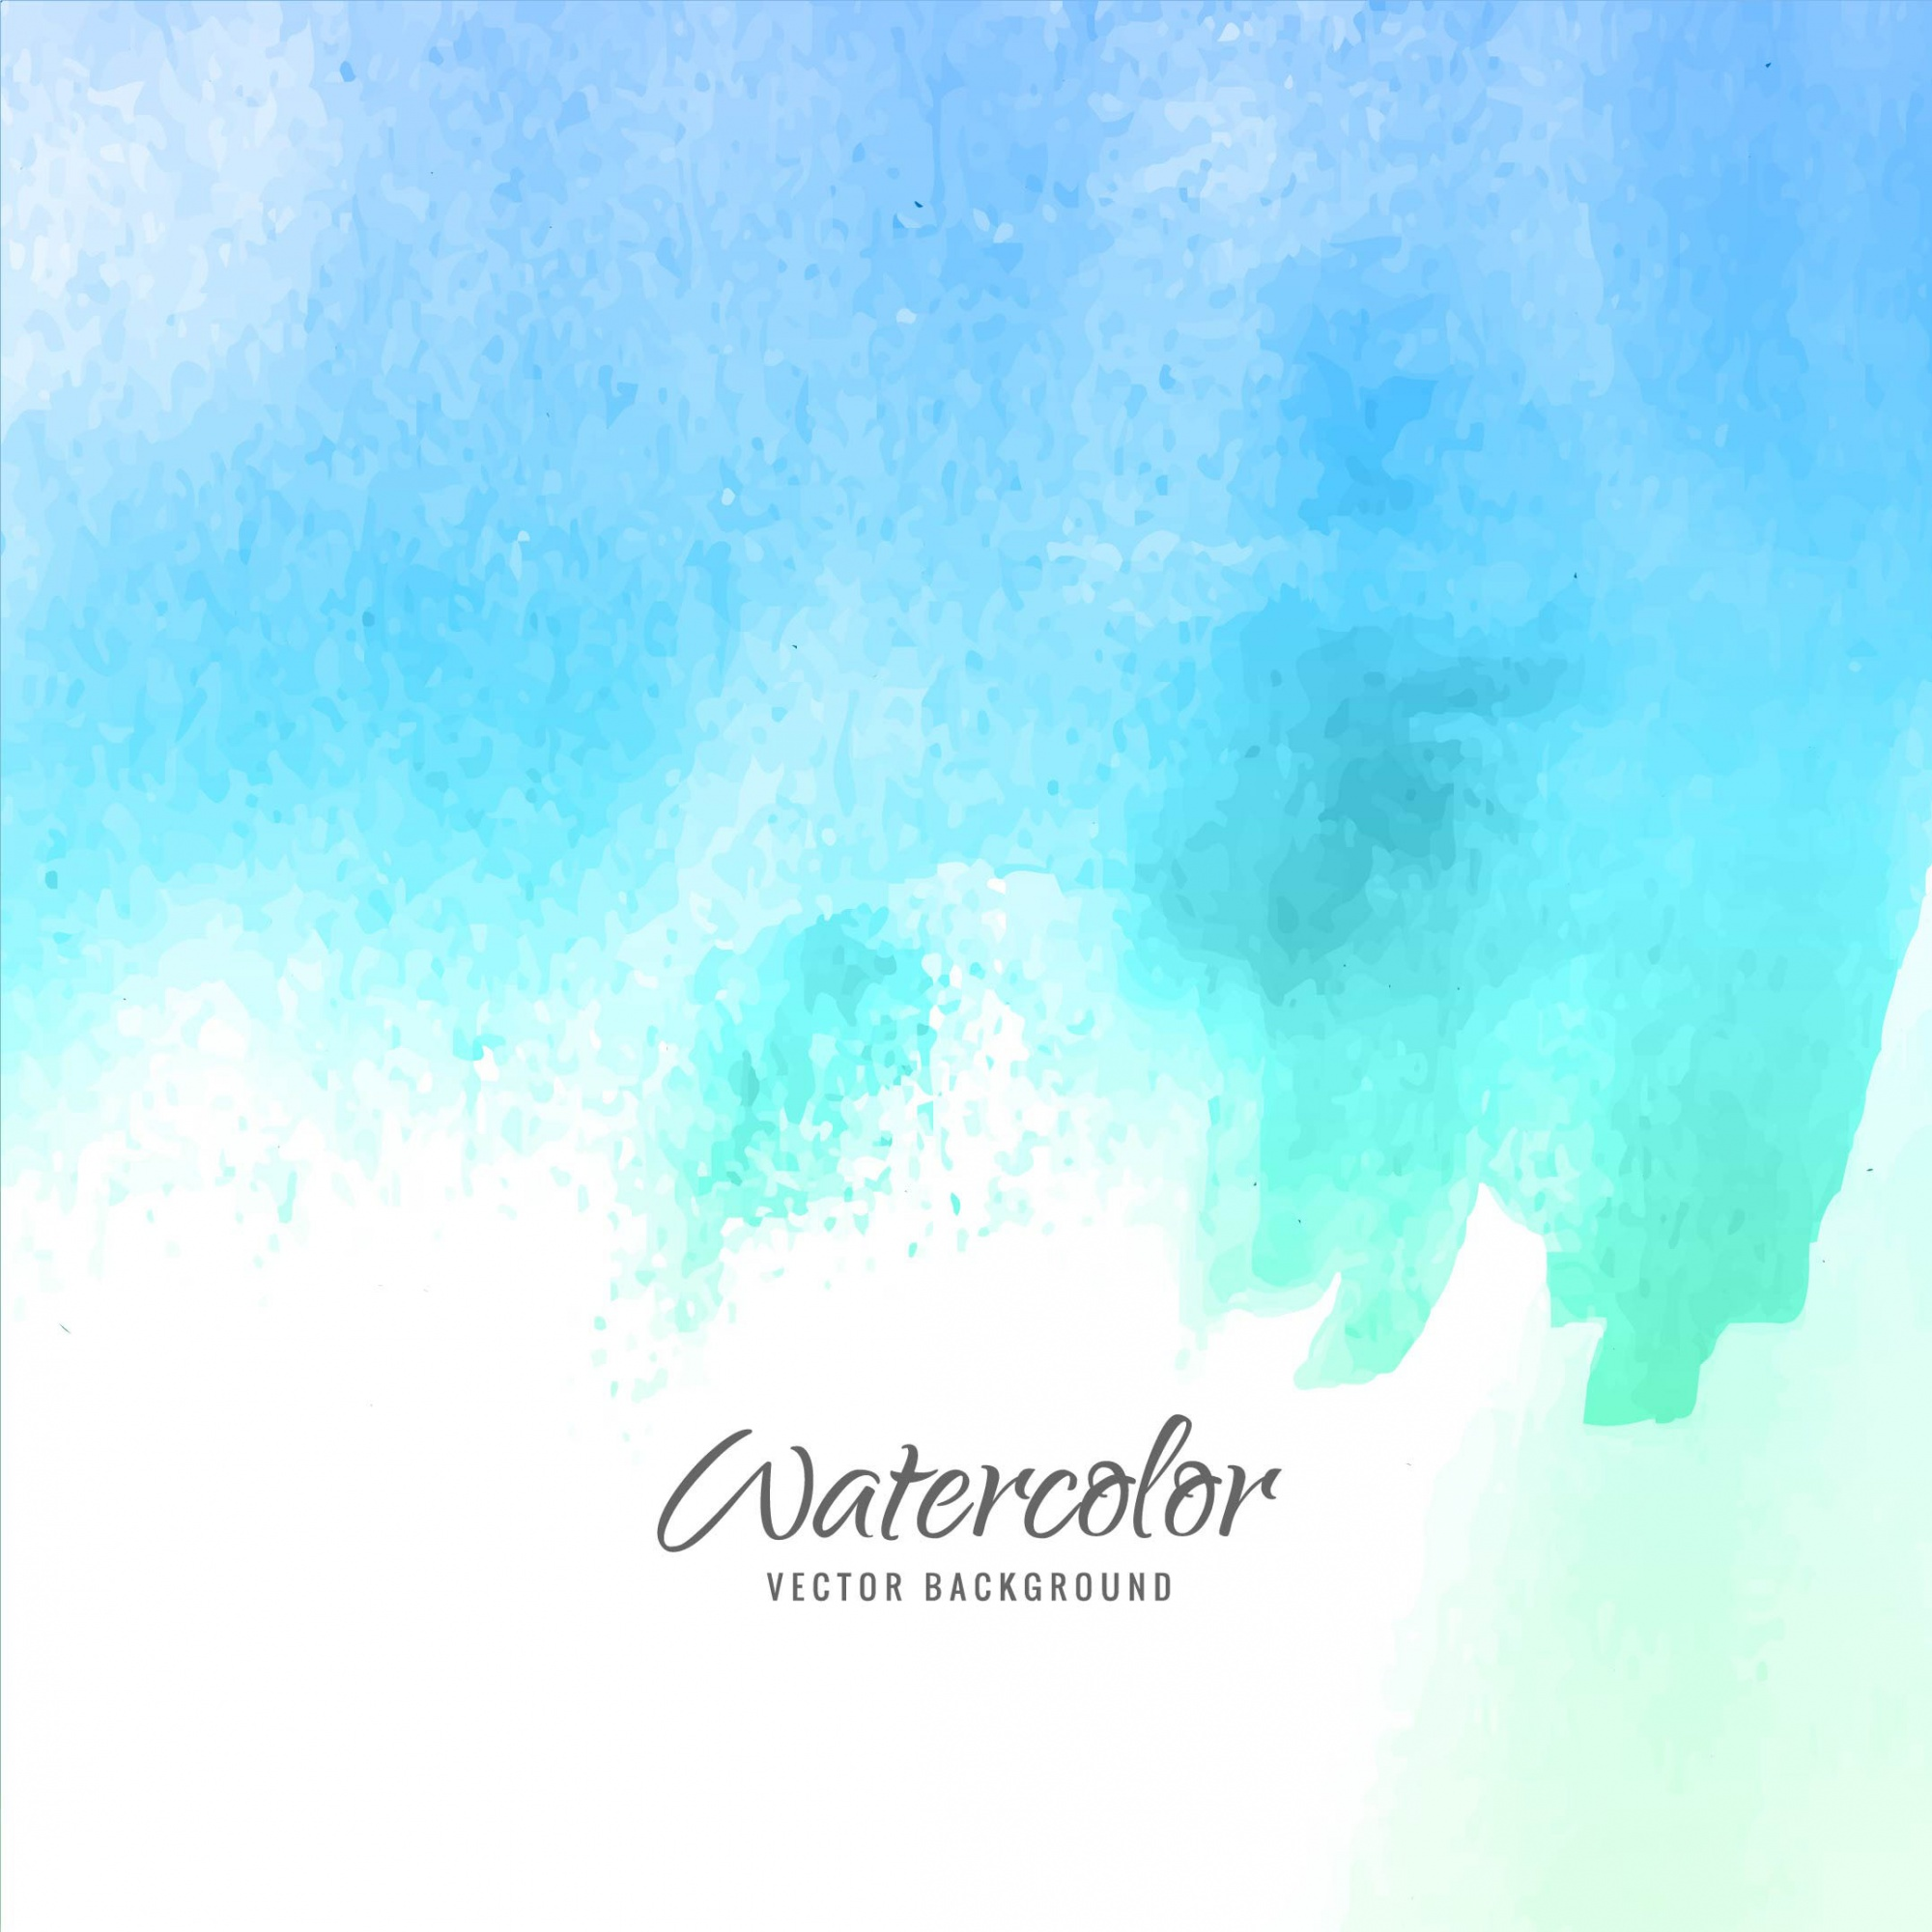 Blue watercolor background design